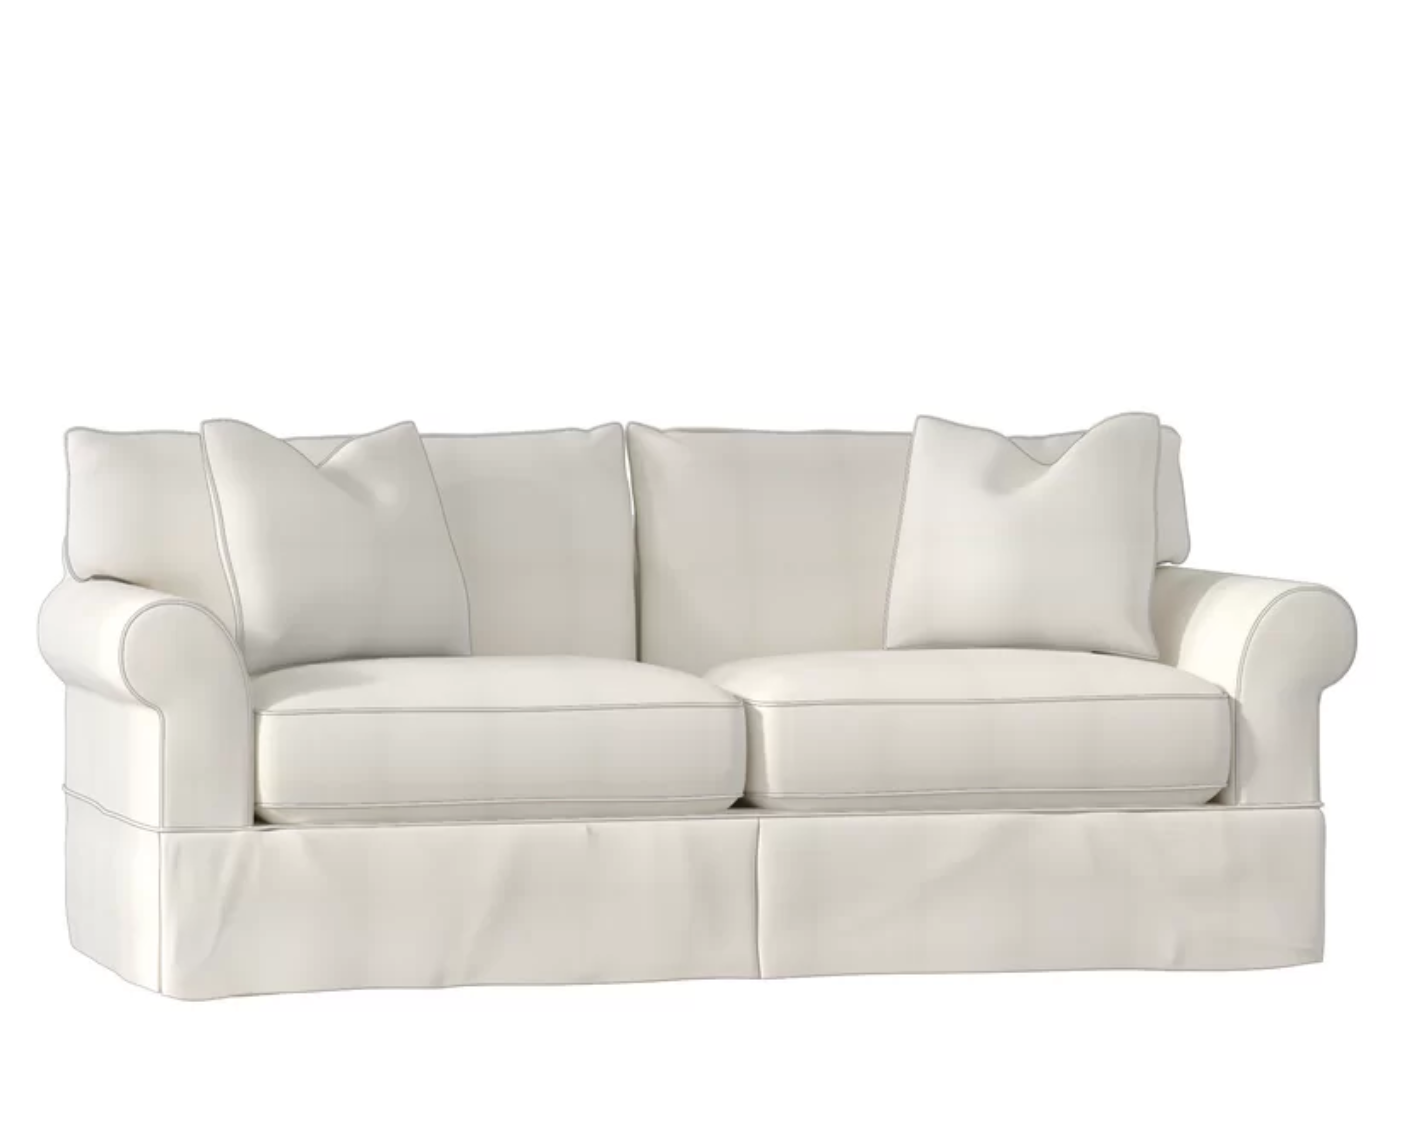 Slipcovered Couch.png